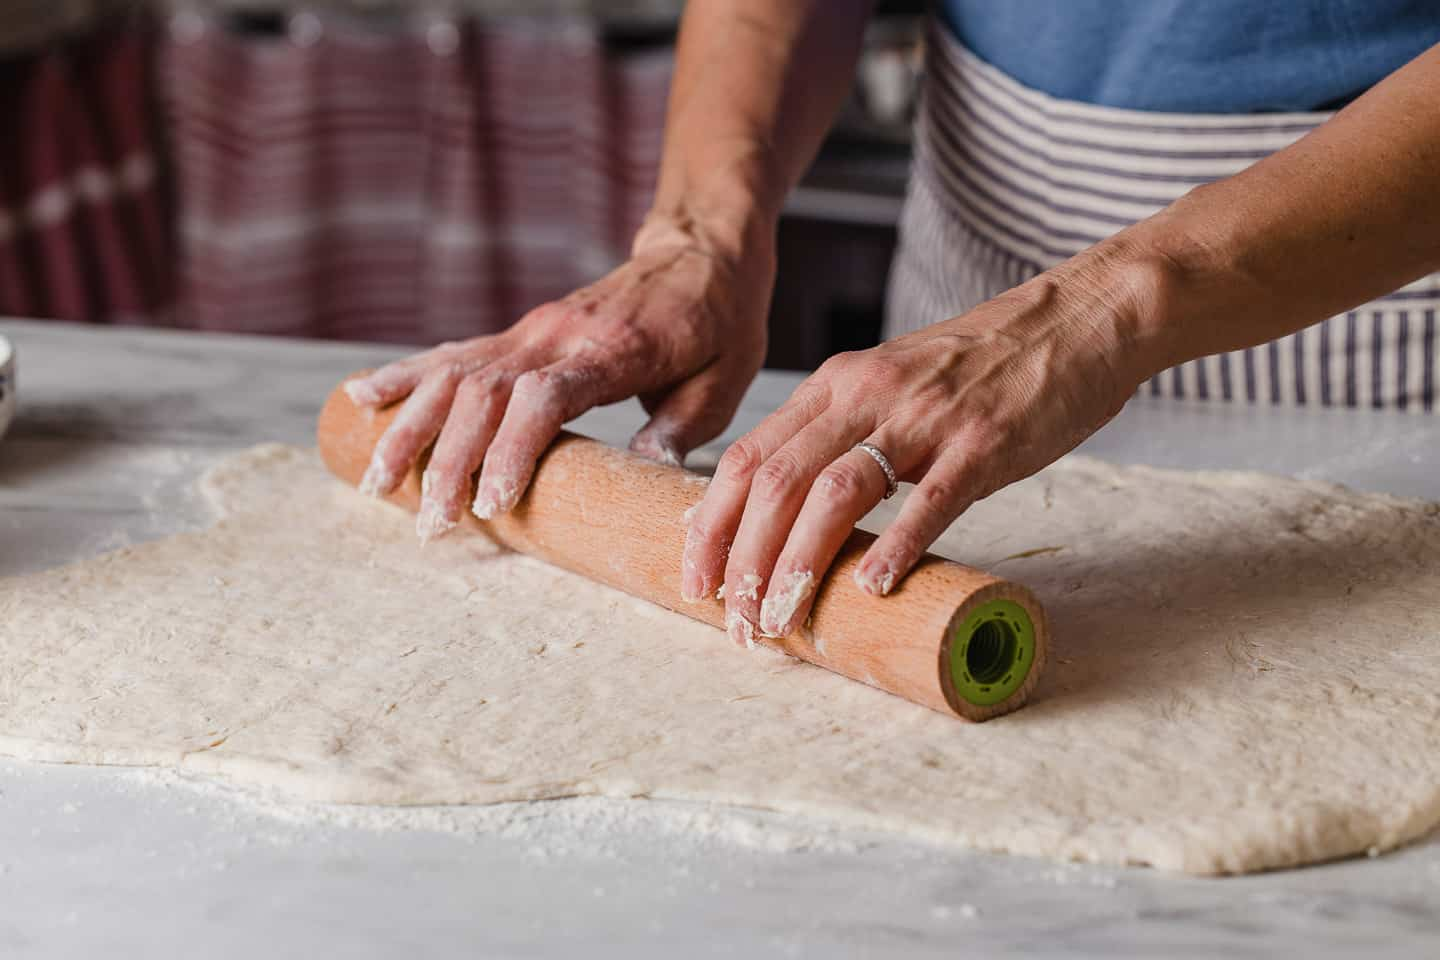 A woman rolling out cinnamon roll dough with a rolling pin.